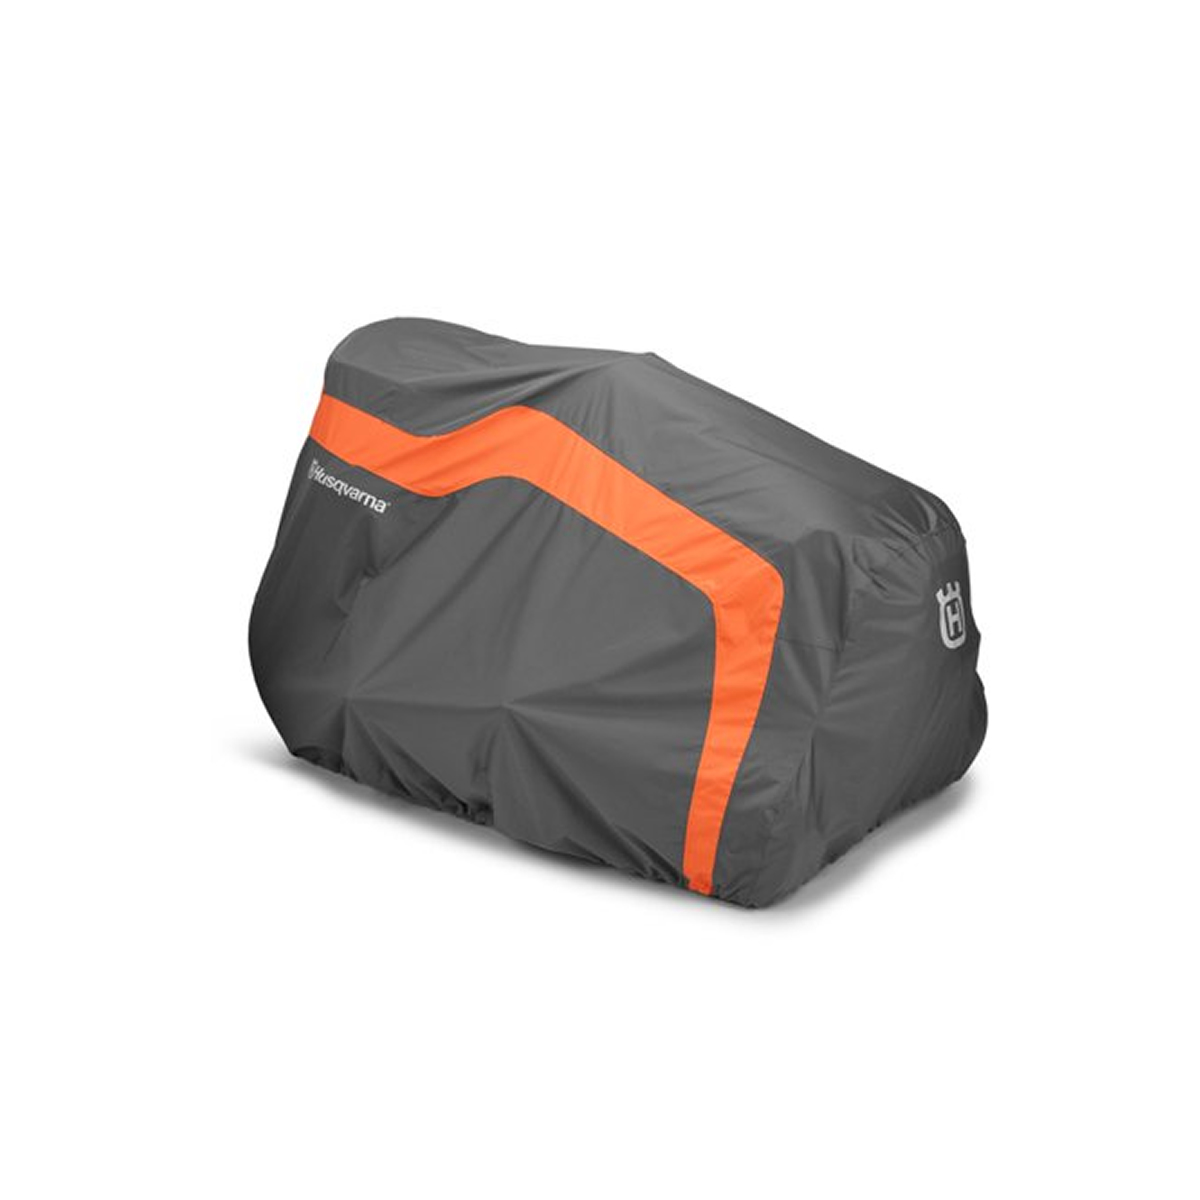 Husqvarna 588208702 Heavy Duty Tractor Cover